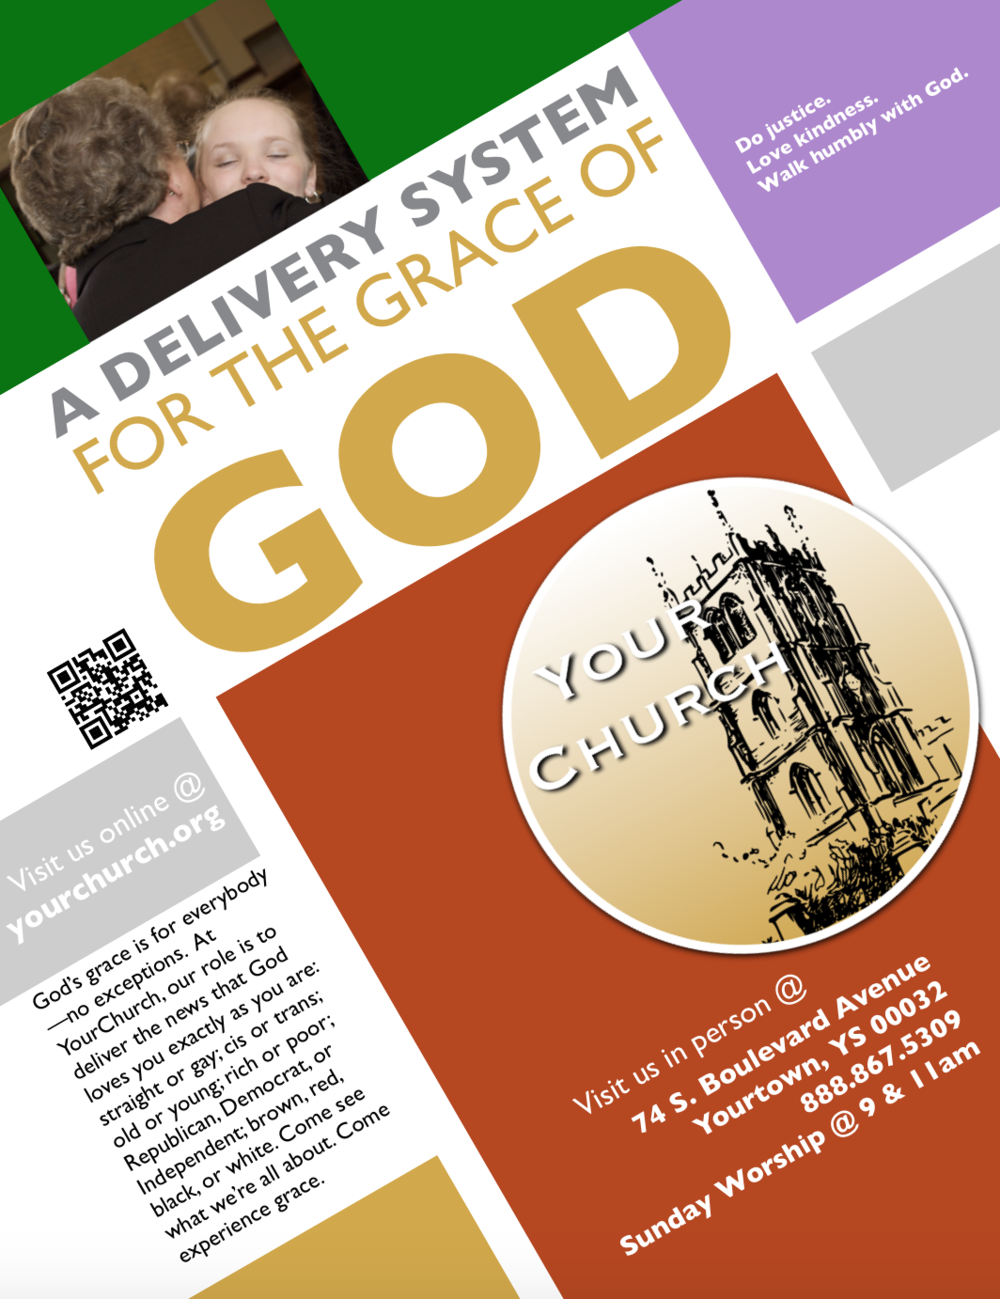 YourChurch Promotional Flyer (Delivery System)